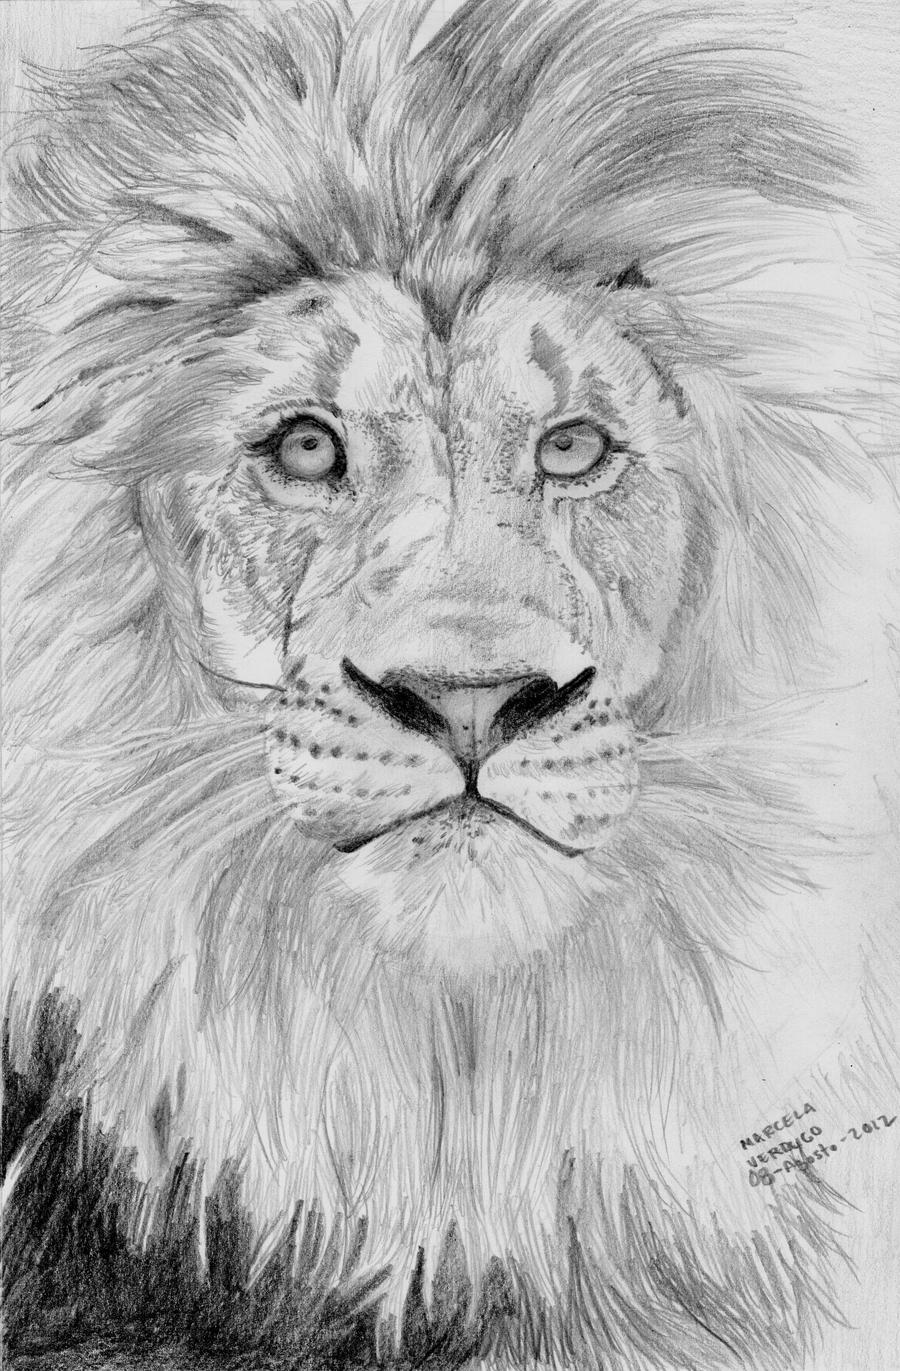 Lions face drawing - photo#16